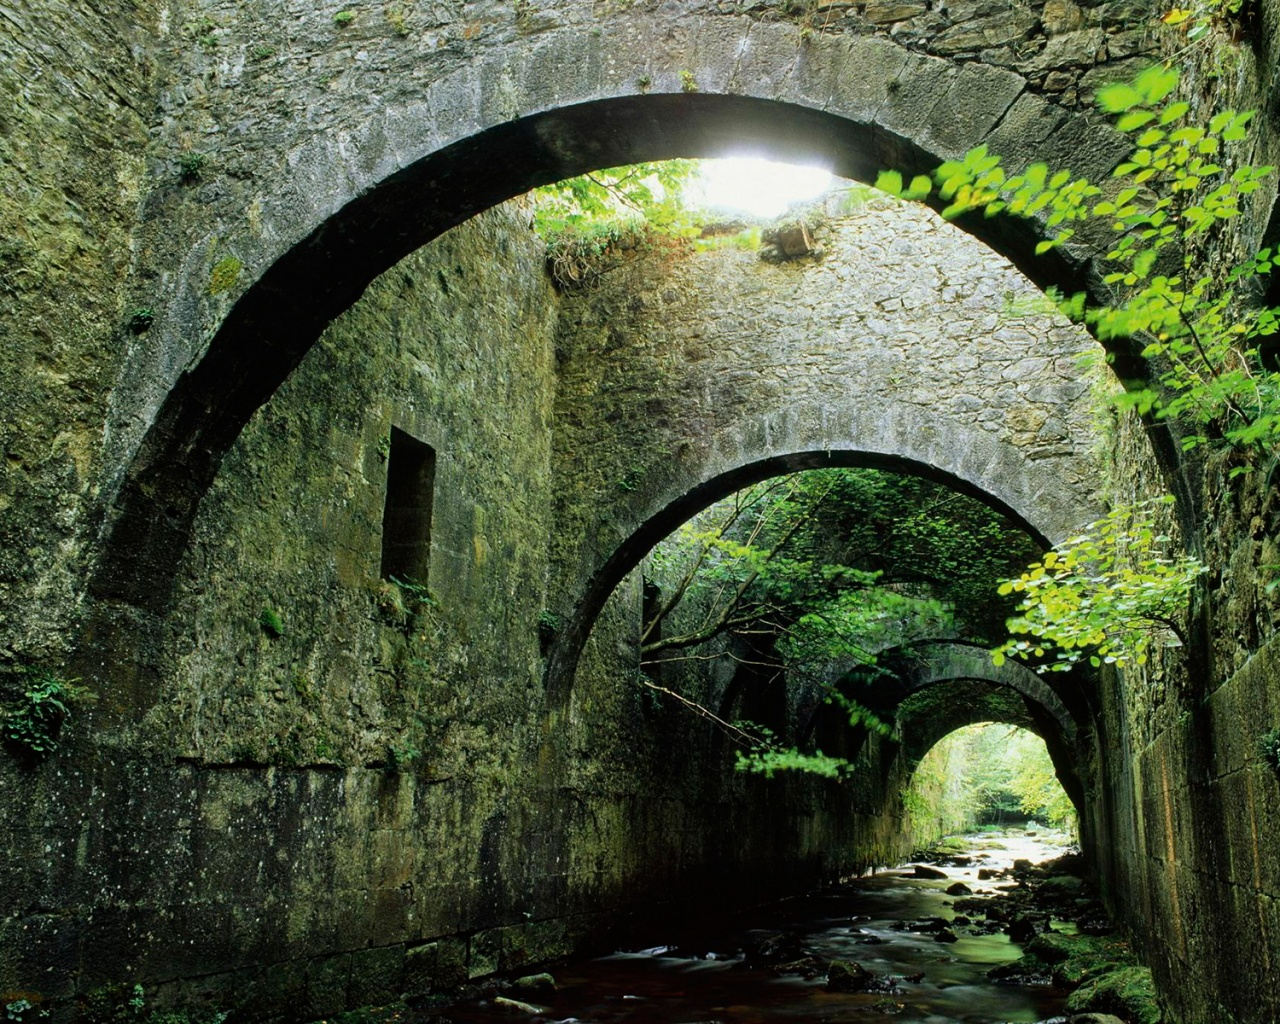 Roman bridge architecture